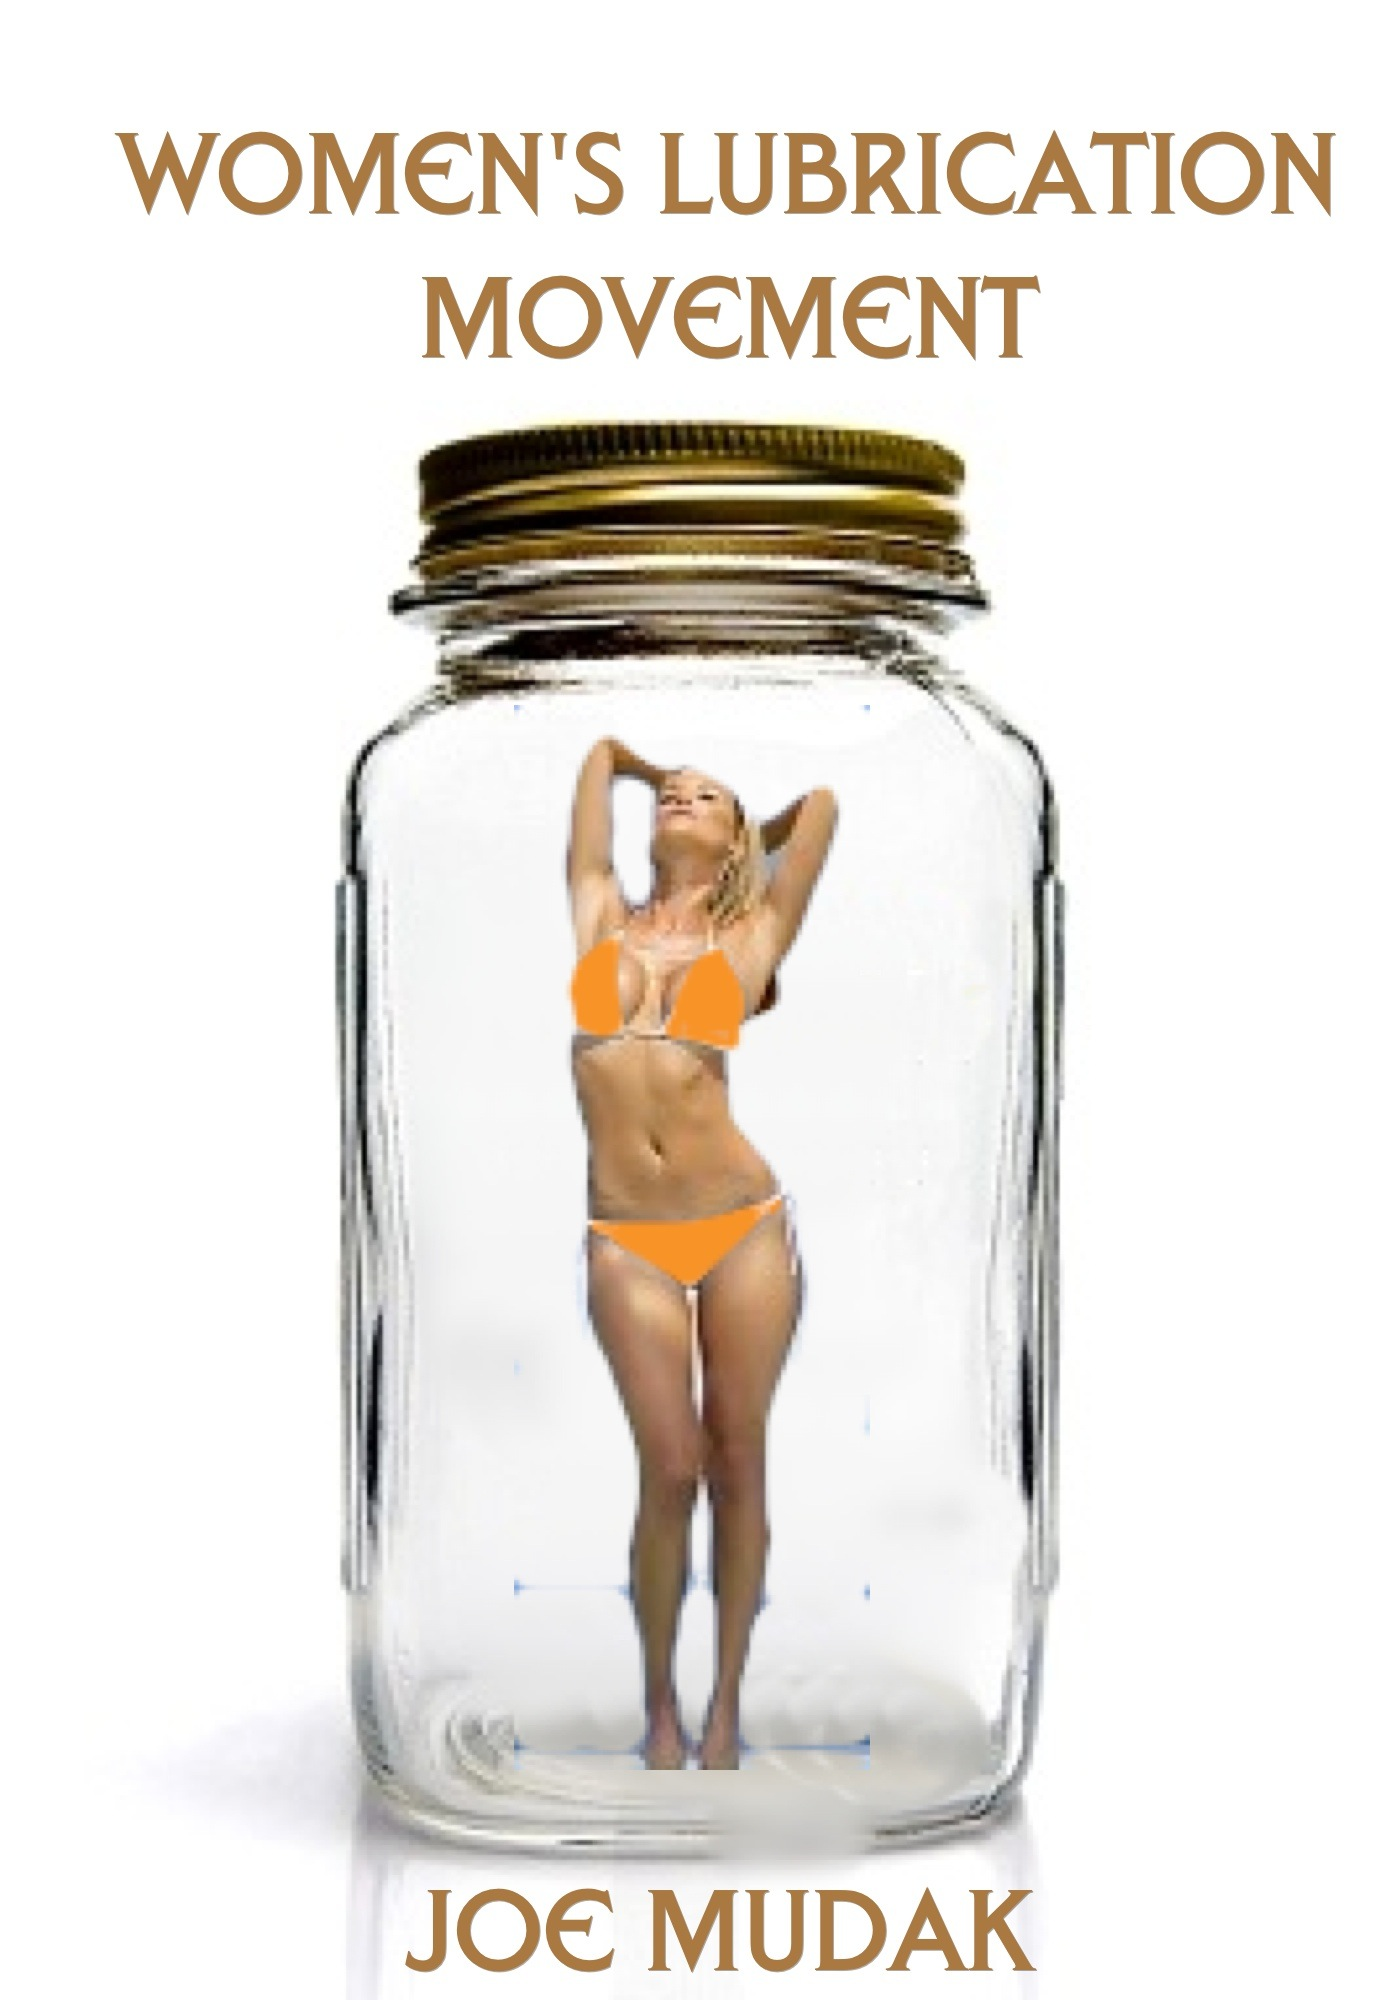 Women's Lubrication Movement